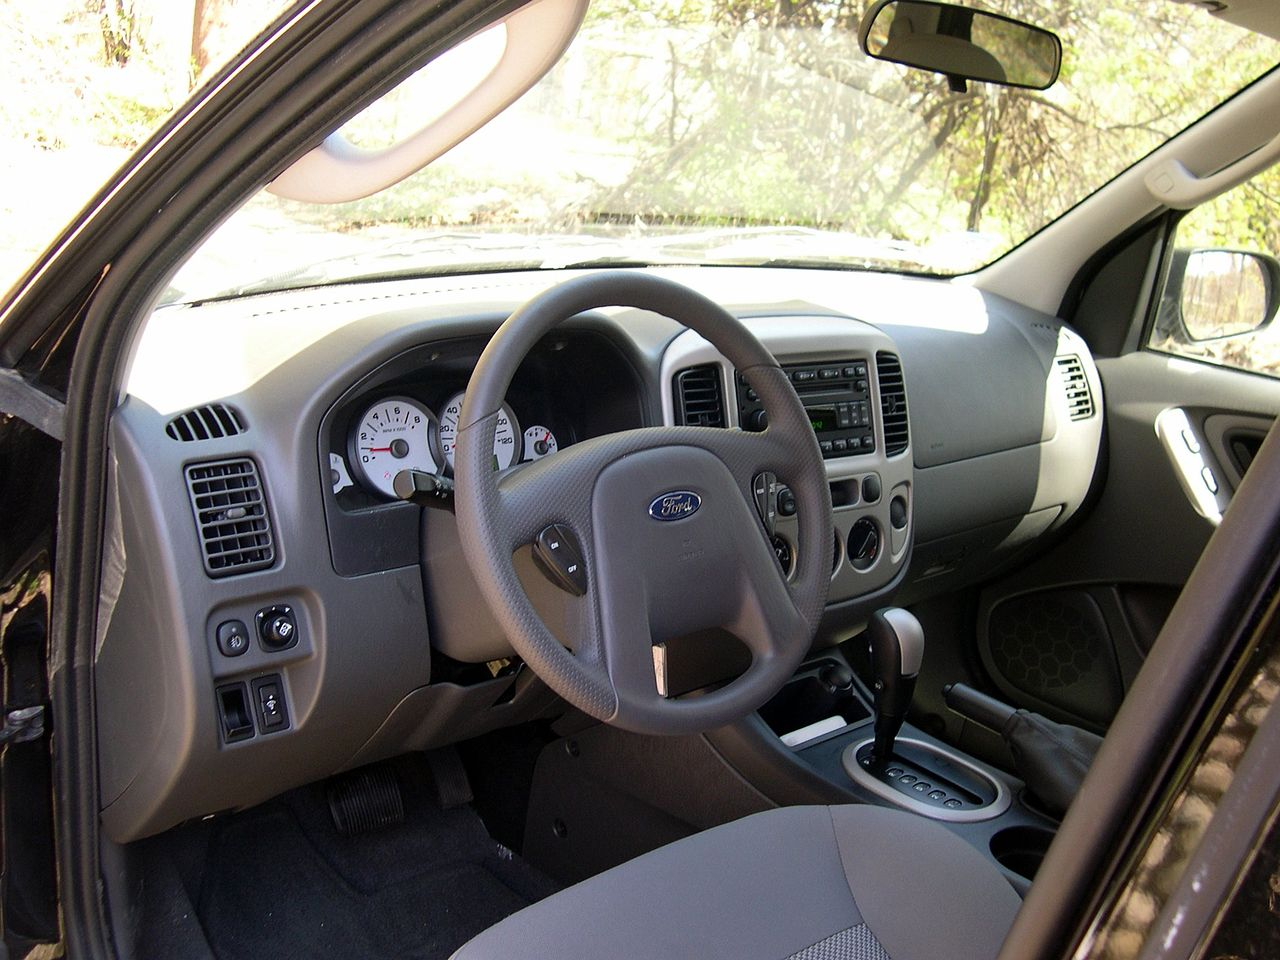 Ford Escape interior #4